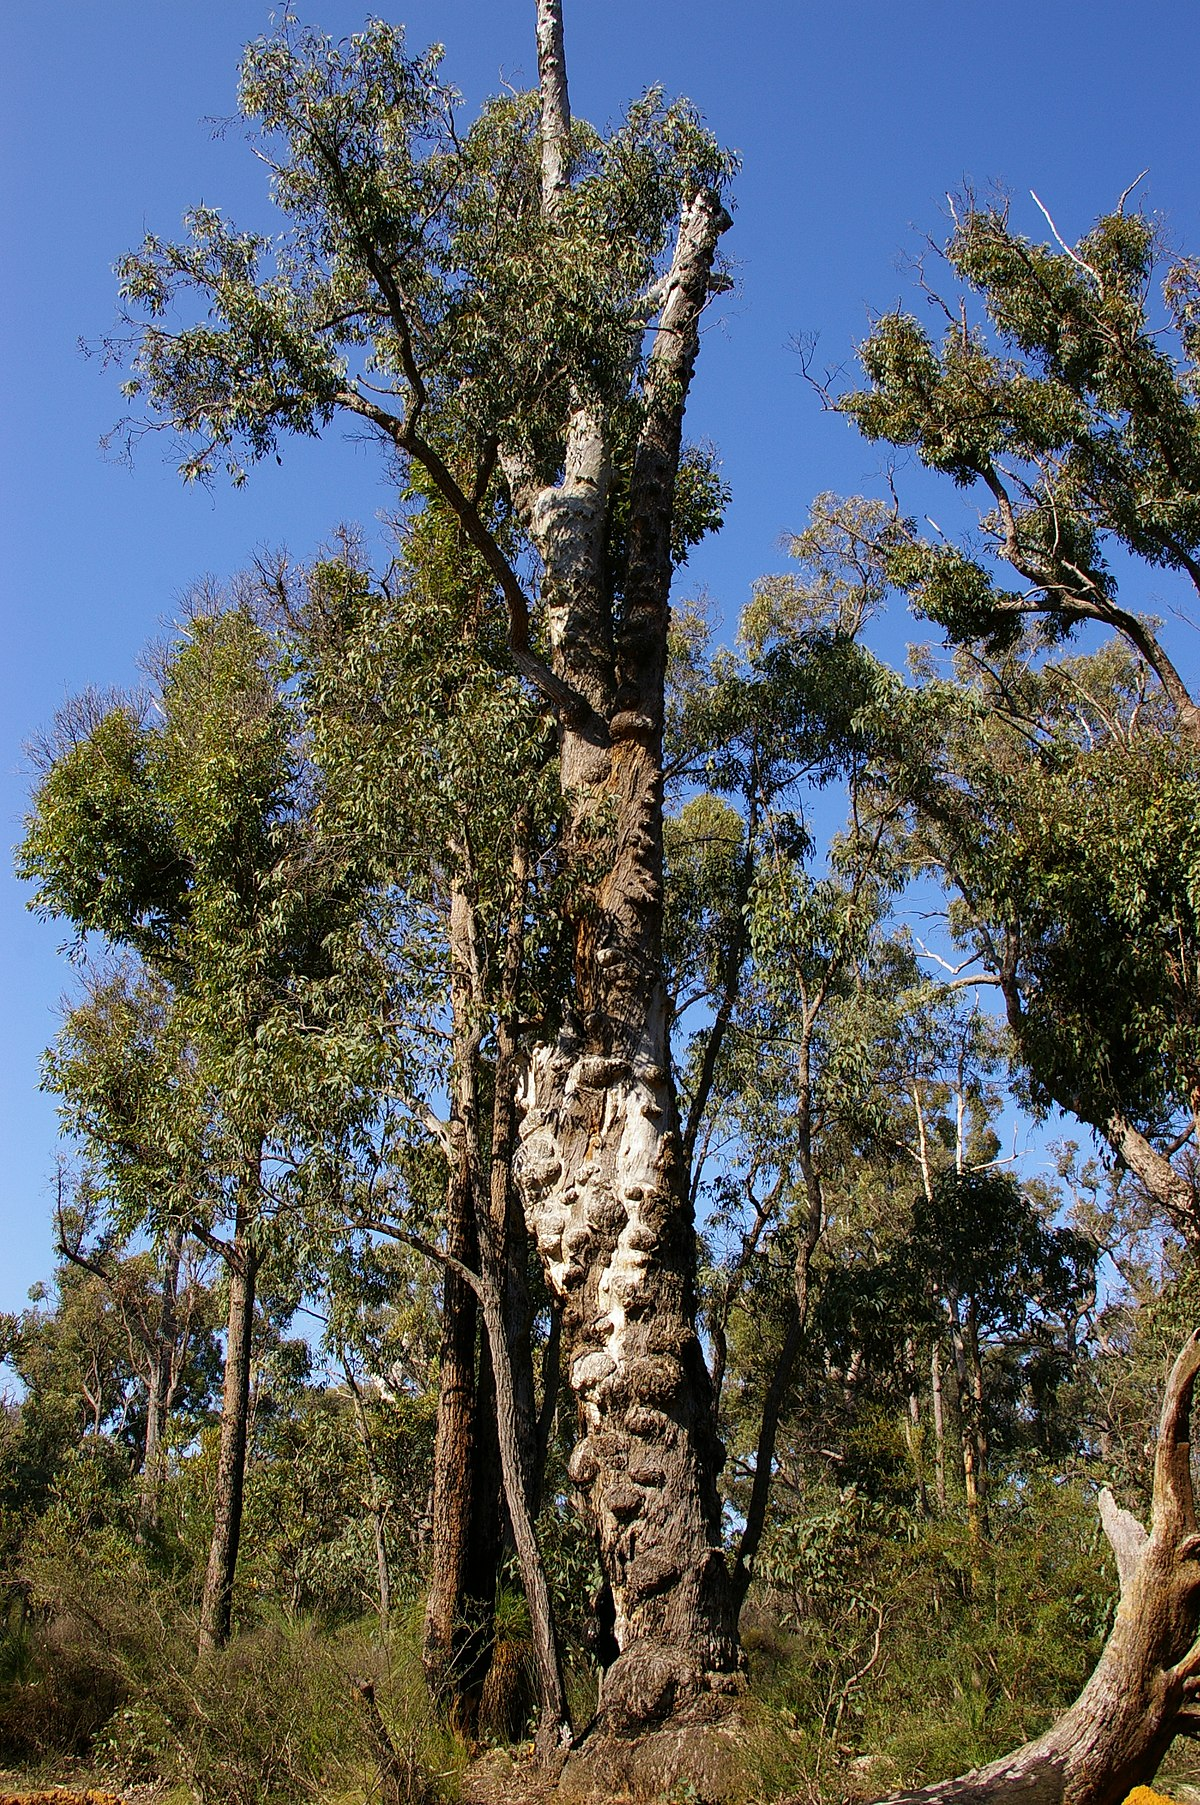 Trees Of Santa Cruz County Nyssa Sylvatica: Eucalyptus Marginata